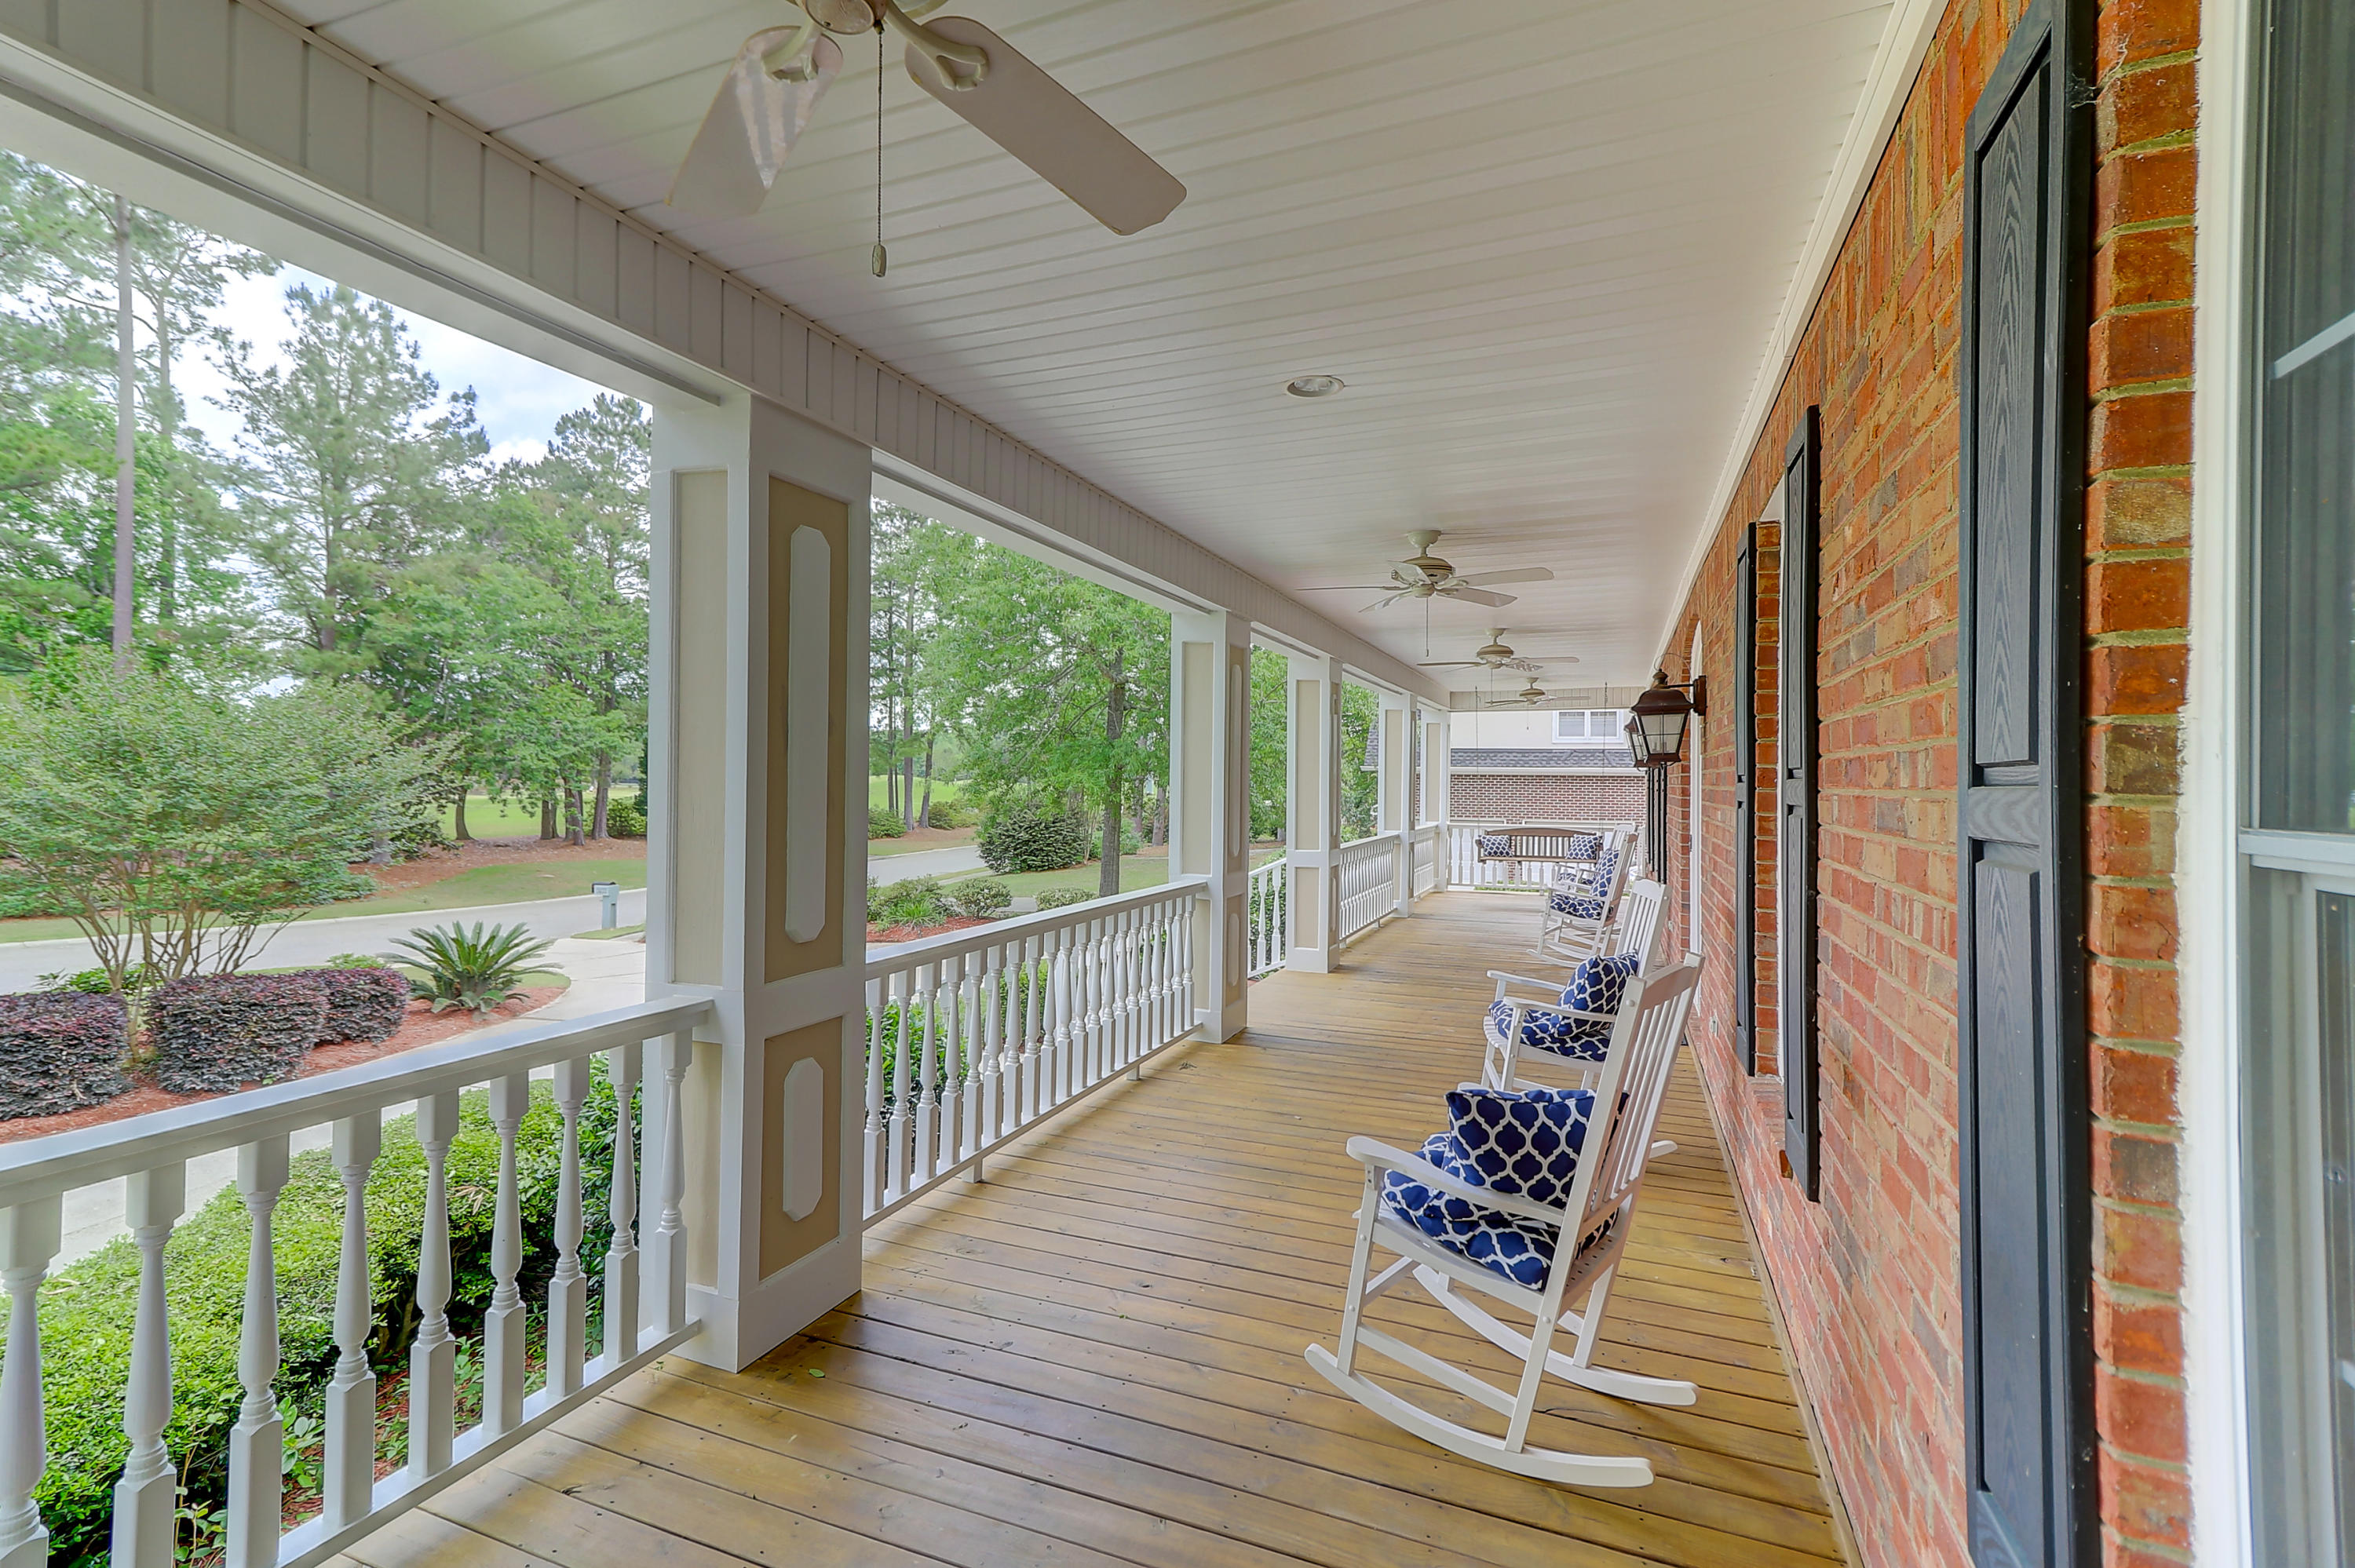 Coosaw Creek Country Club Homes For Sale - 8700 Fairway Woods, North Charleston, SC - 3